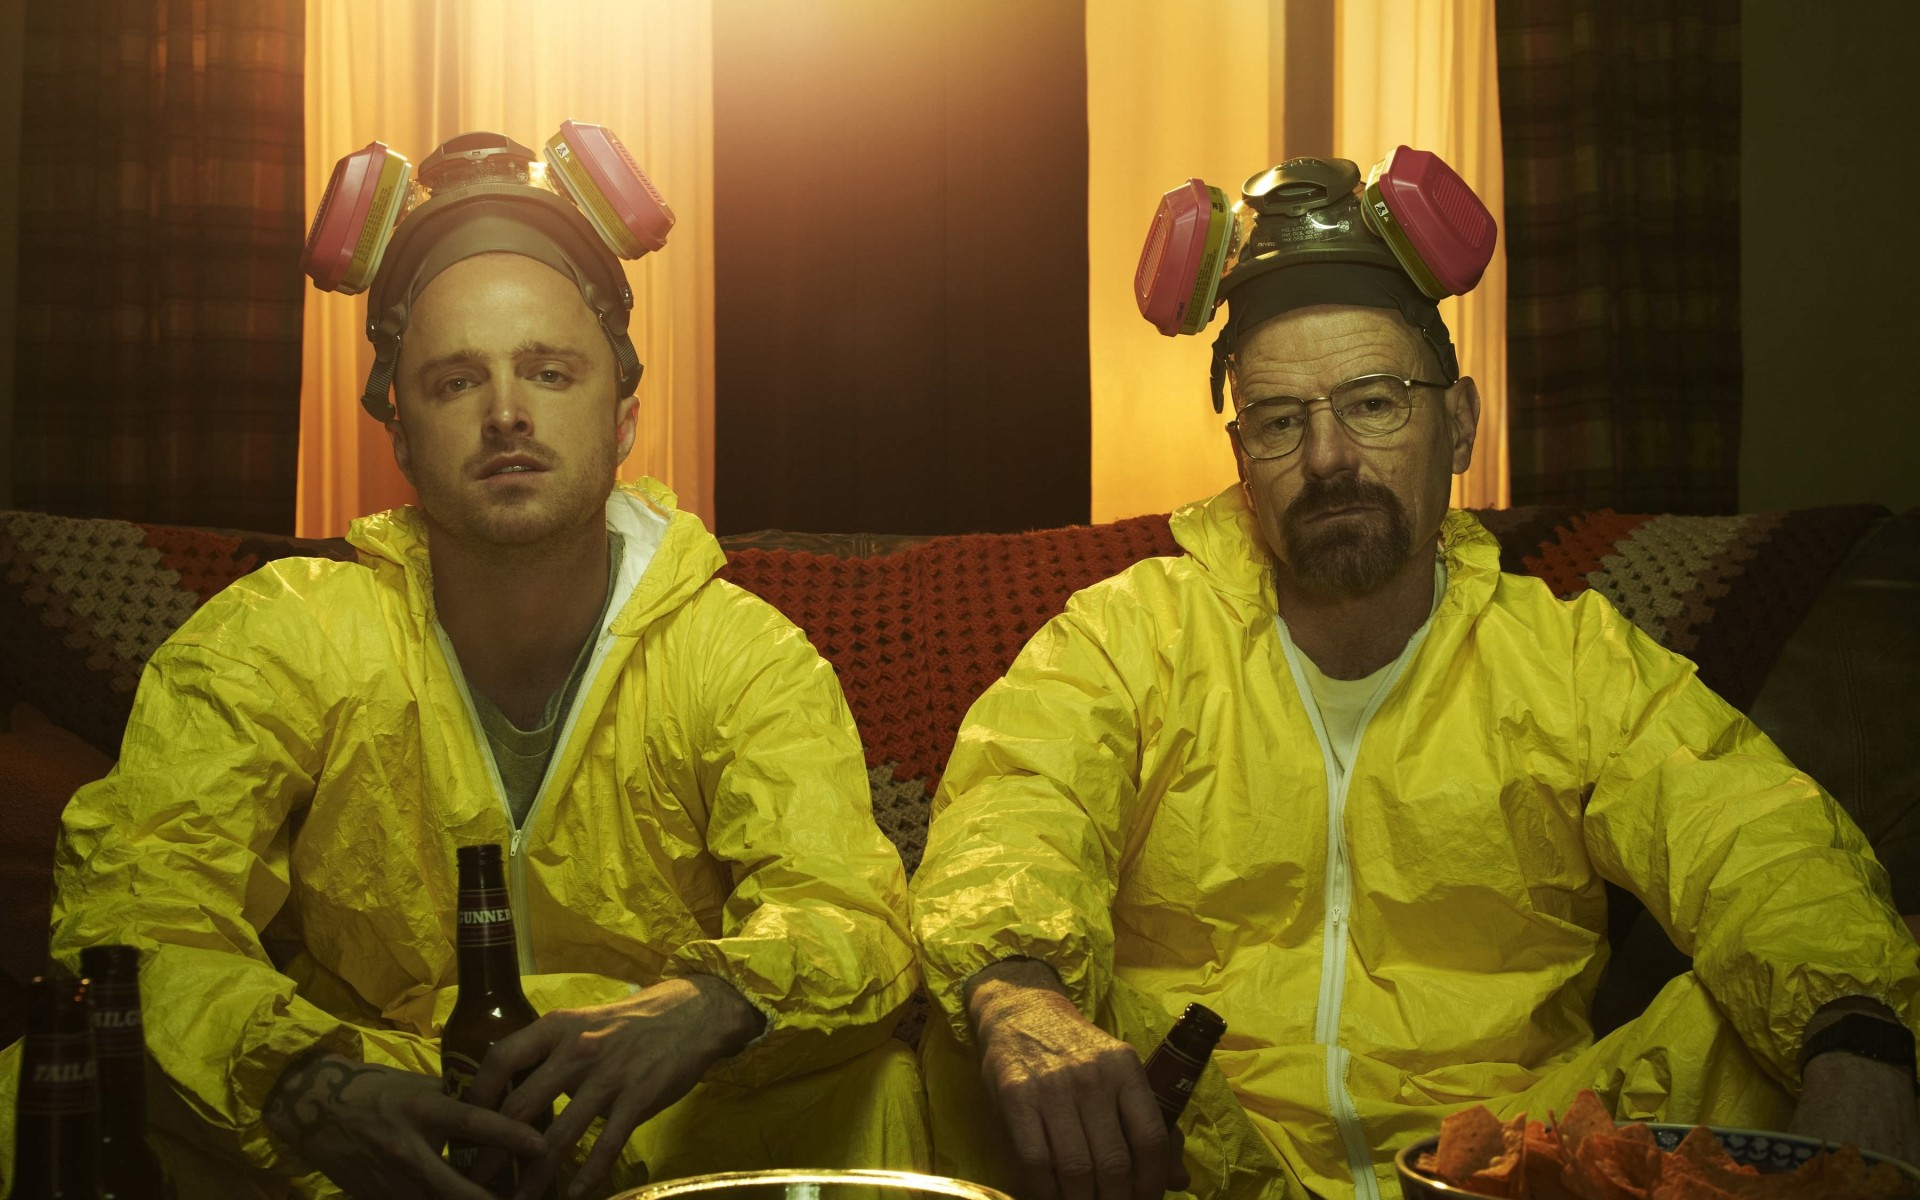 Breaking Bad - Jesse & Walt Drinking Wallpaper for Desktop 1920x1200